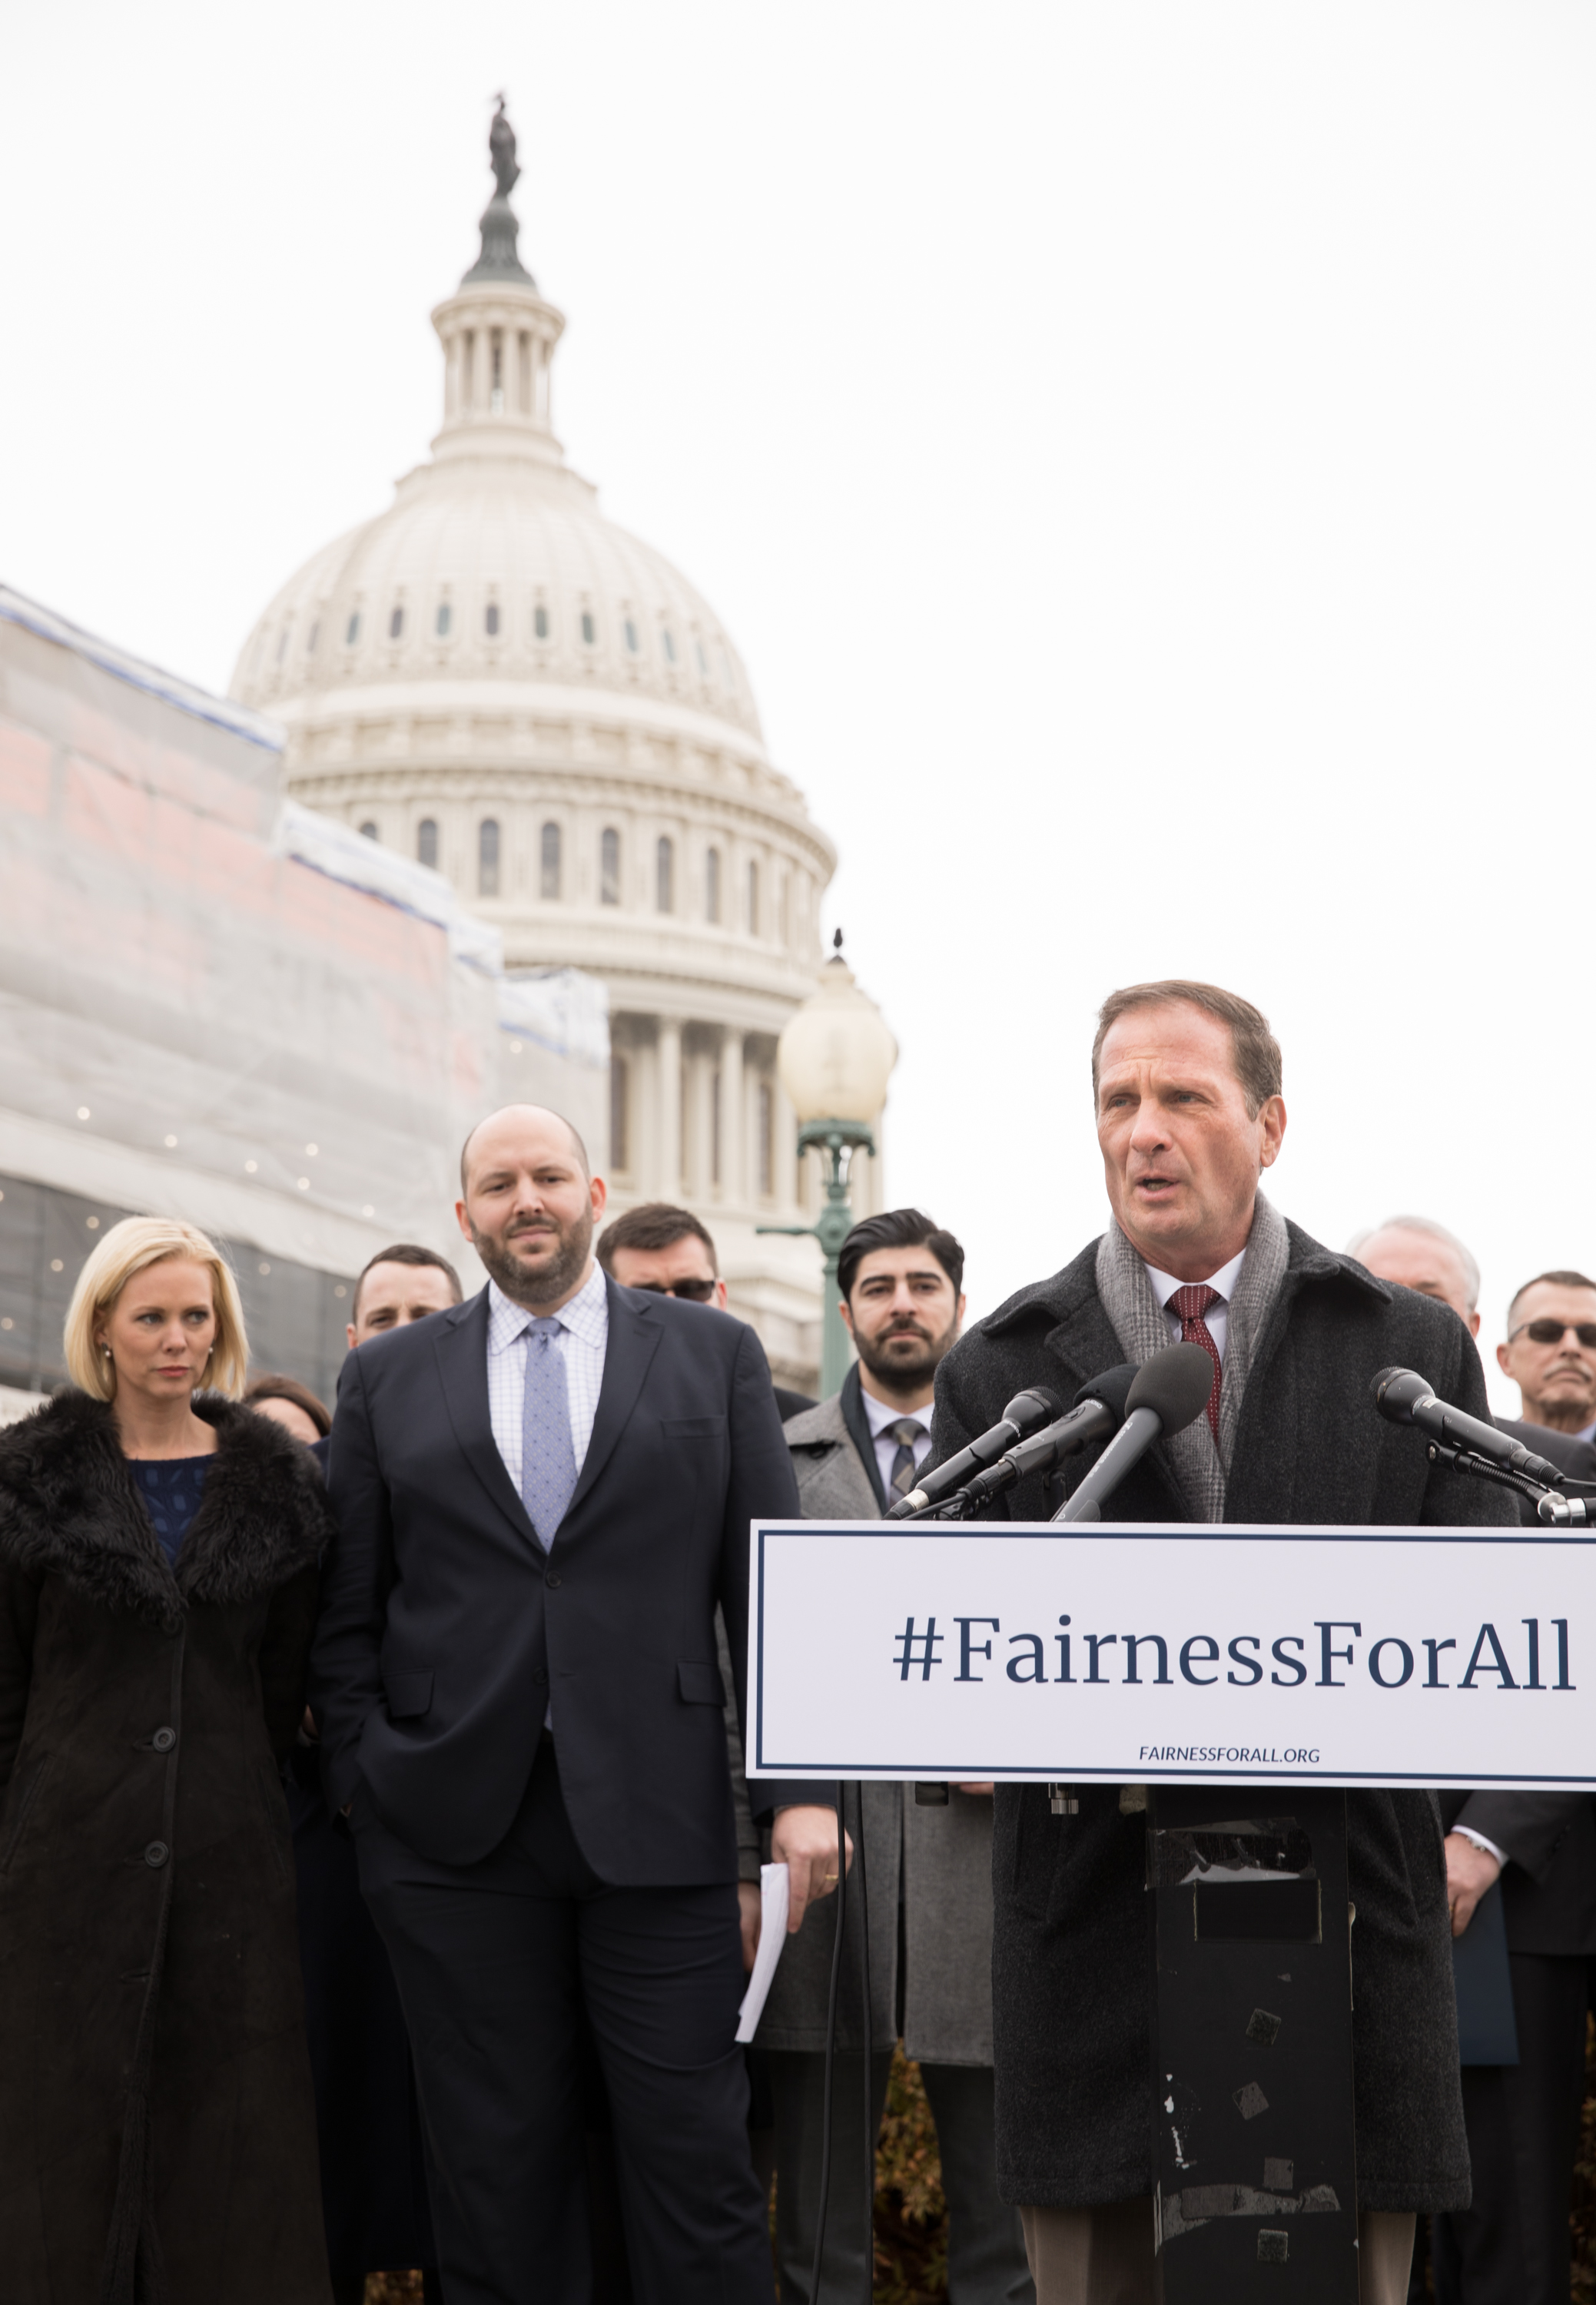 Congressman Chris Stewart, R-Utah, discusses his latest legislation, the Fairness for All Act, which aims to harmonize religious freedom and LGBT rights, during a press conference at the U.S. Capitol in Washington, D.C., on Friday, Dec. 6, 2019.